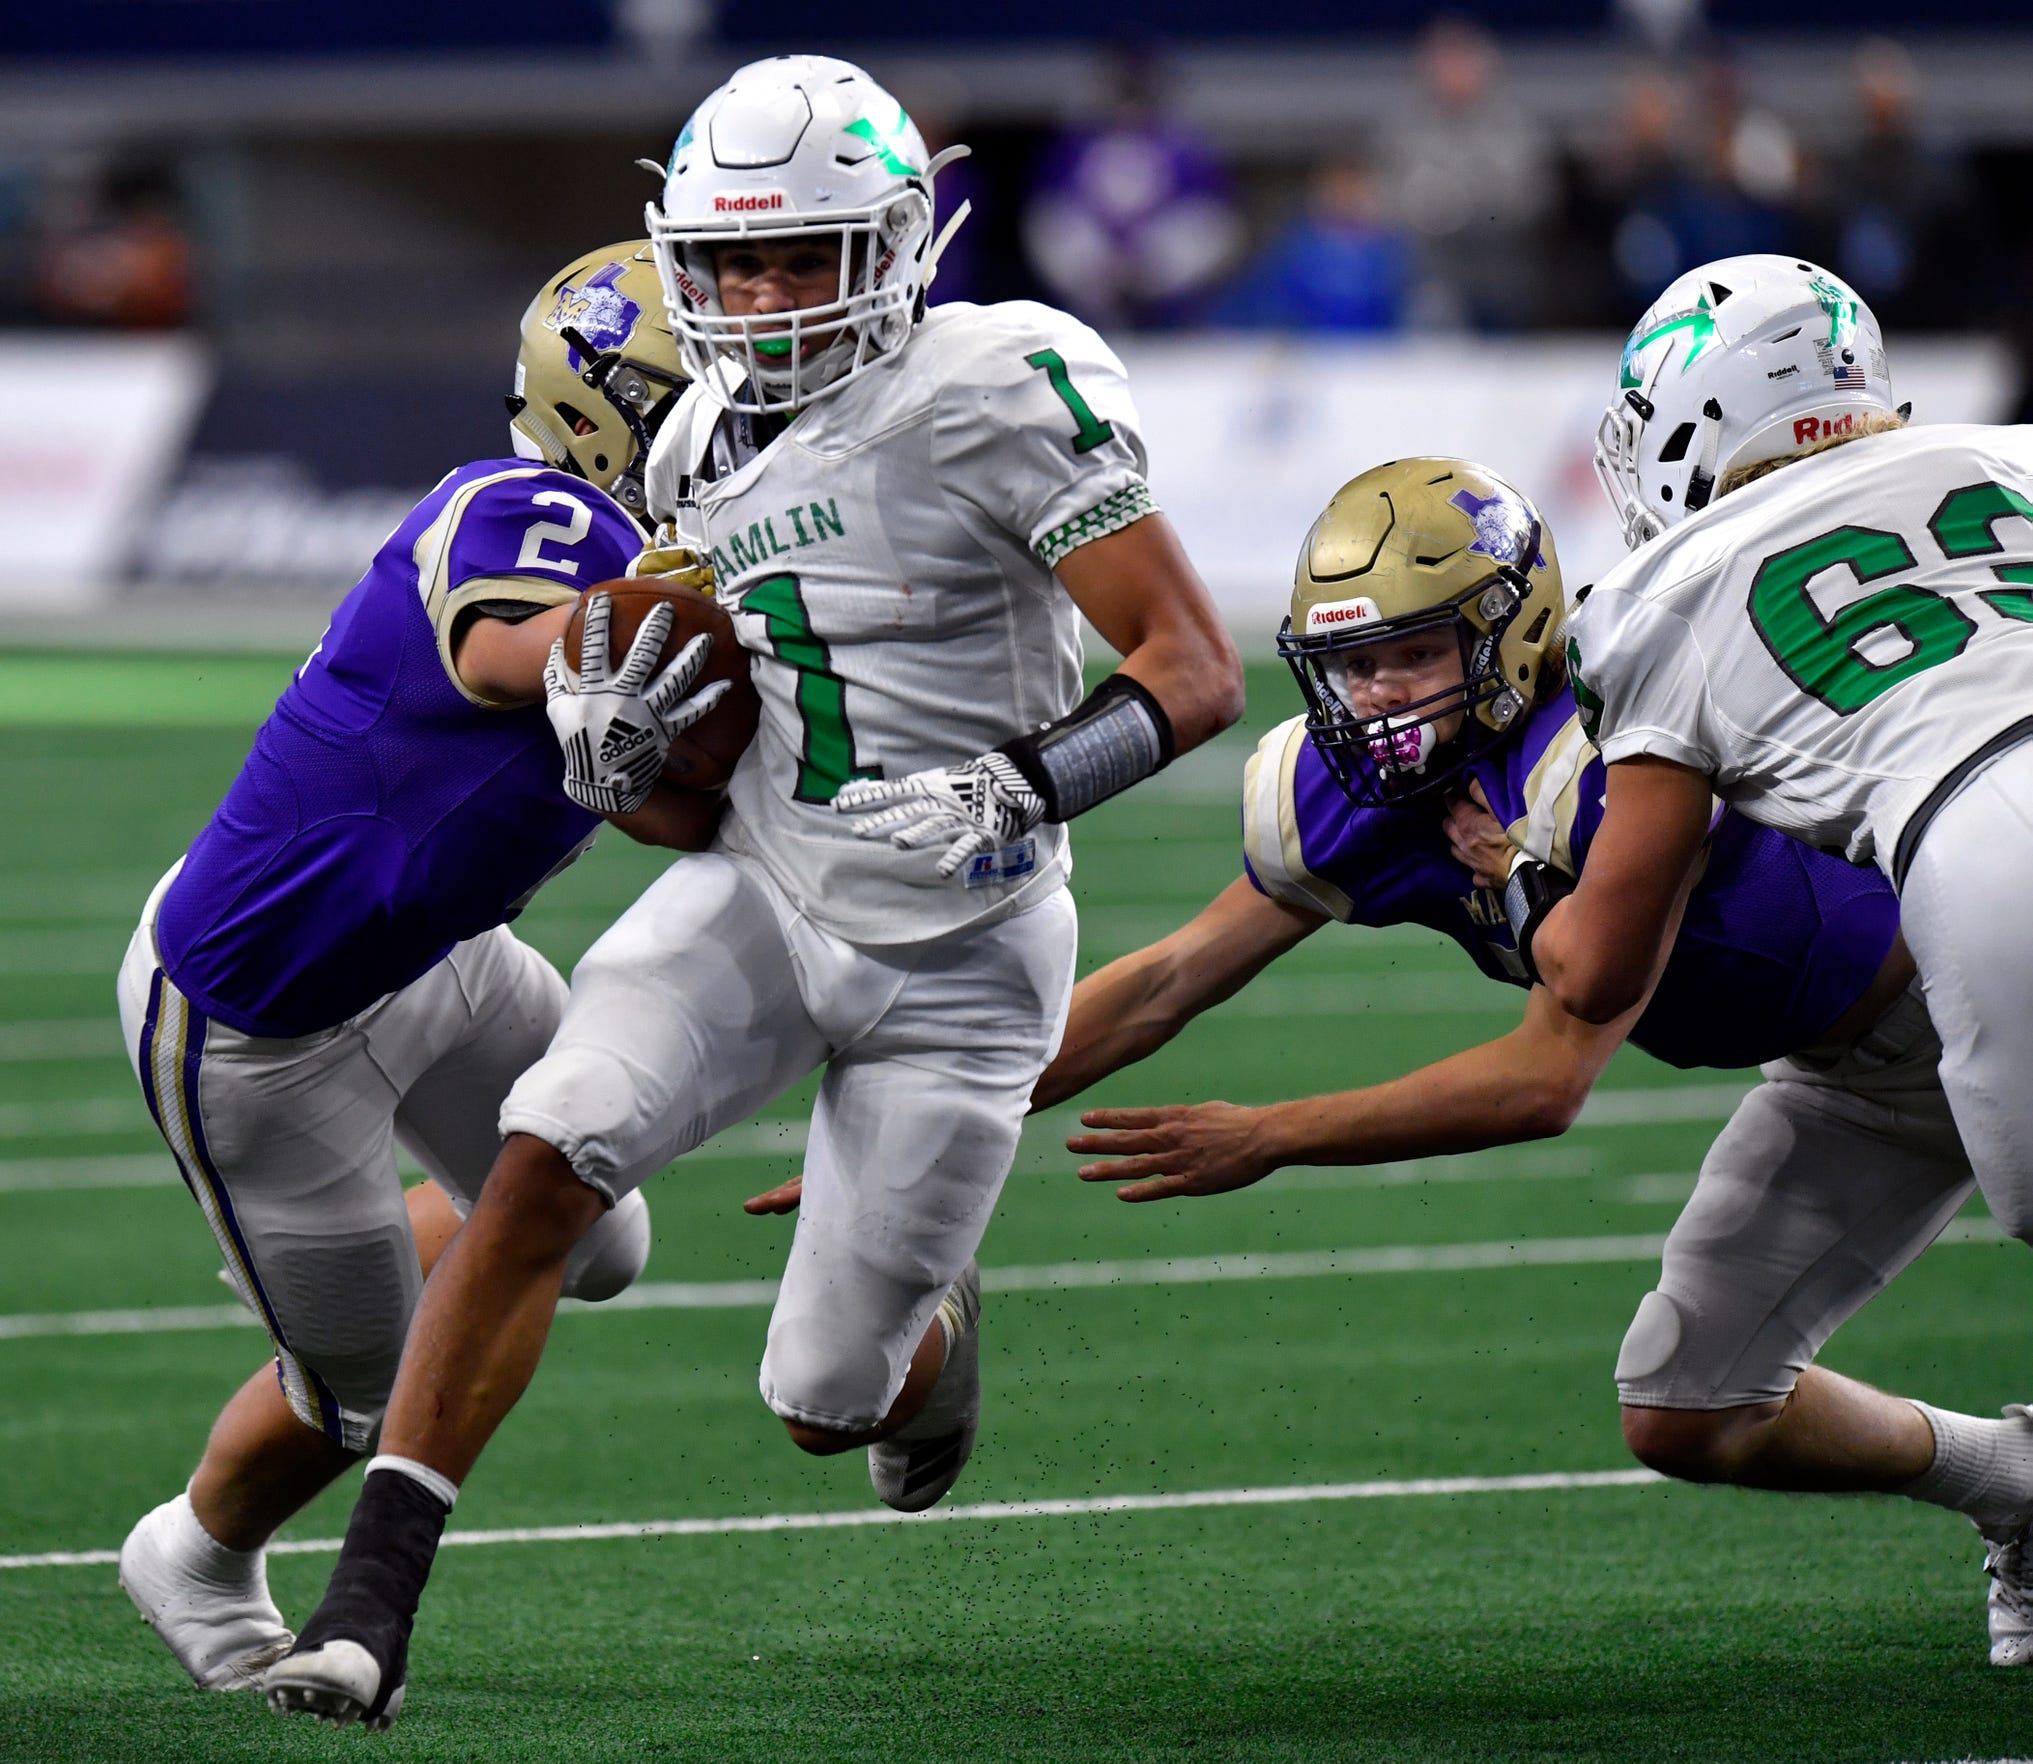 Hamlin senior Jevon Williams carries the ball against Mart during the Class 2A Div. II Championship game between Hamlin and Mart on Dec. 19. Mart won 25-20 at AT&T Stadium in Arlington.